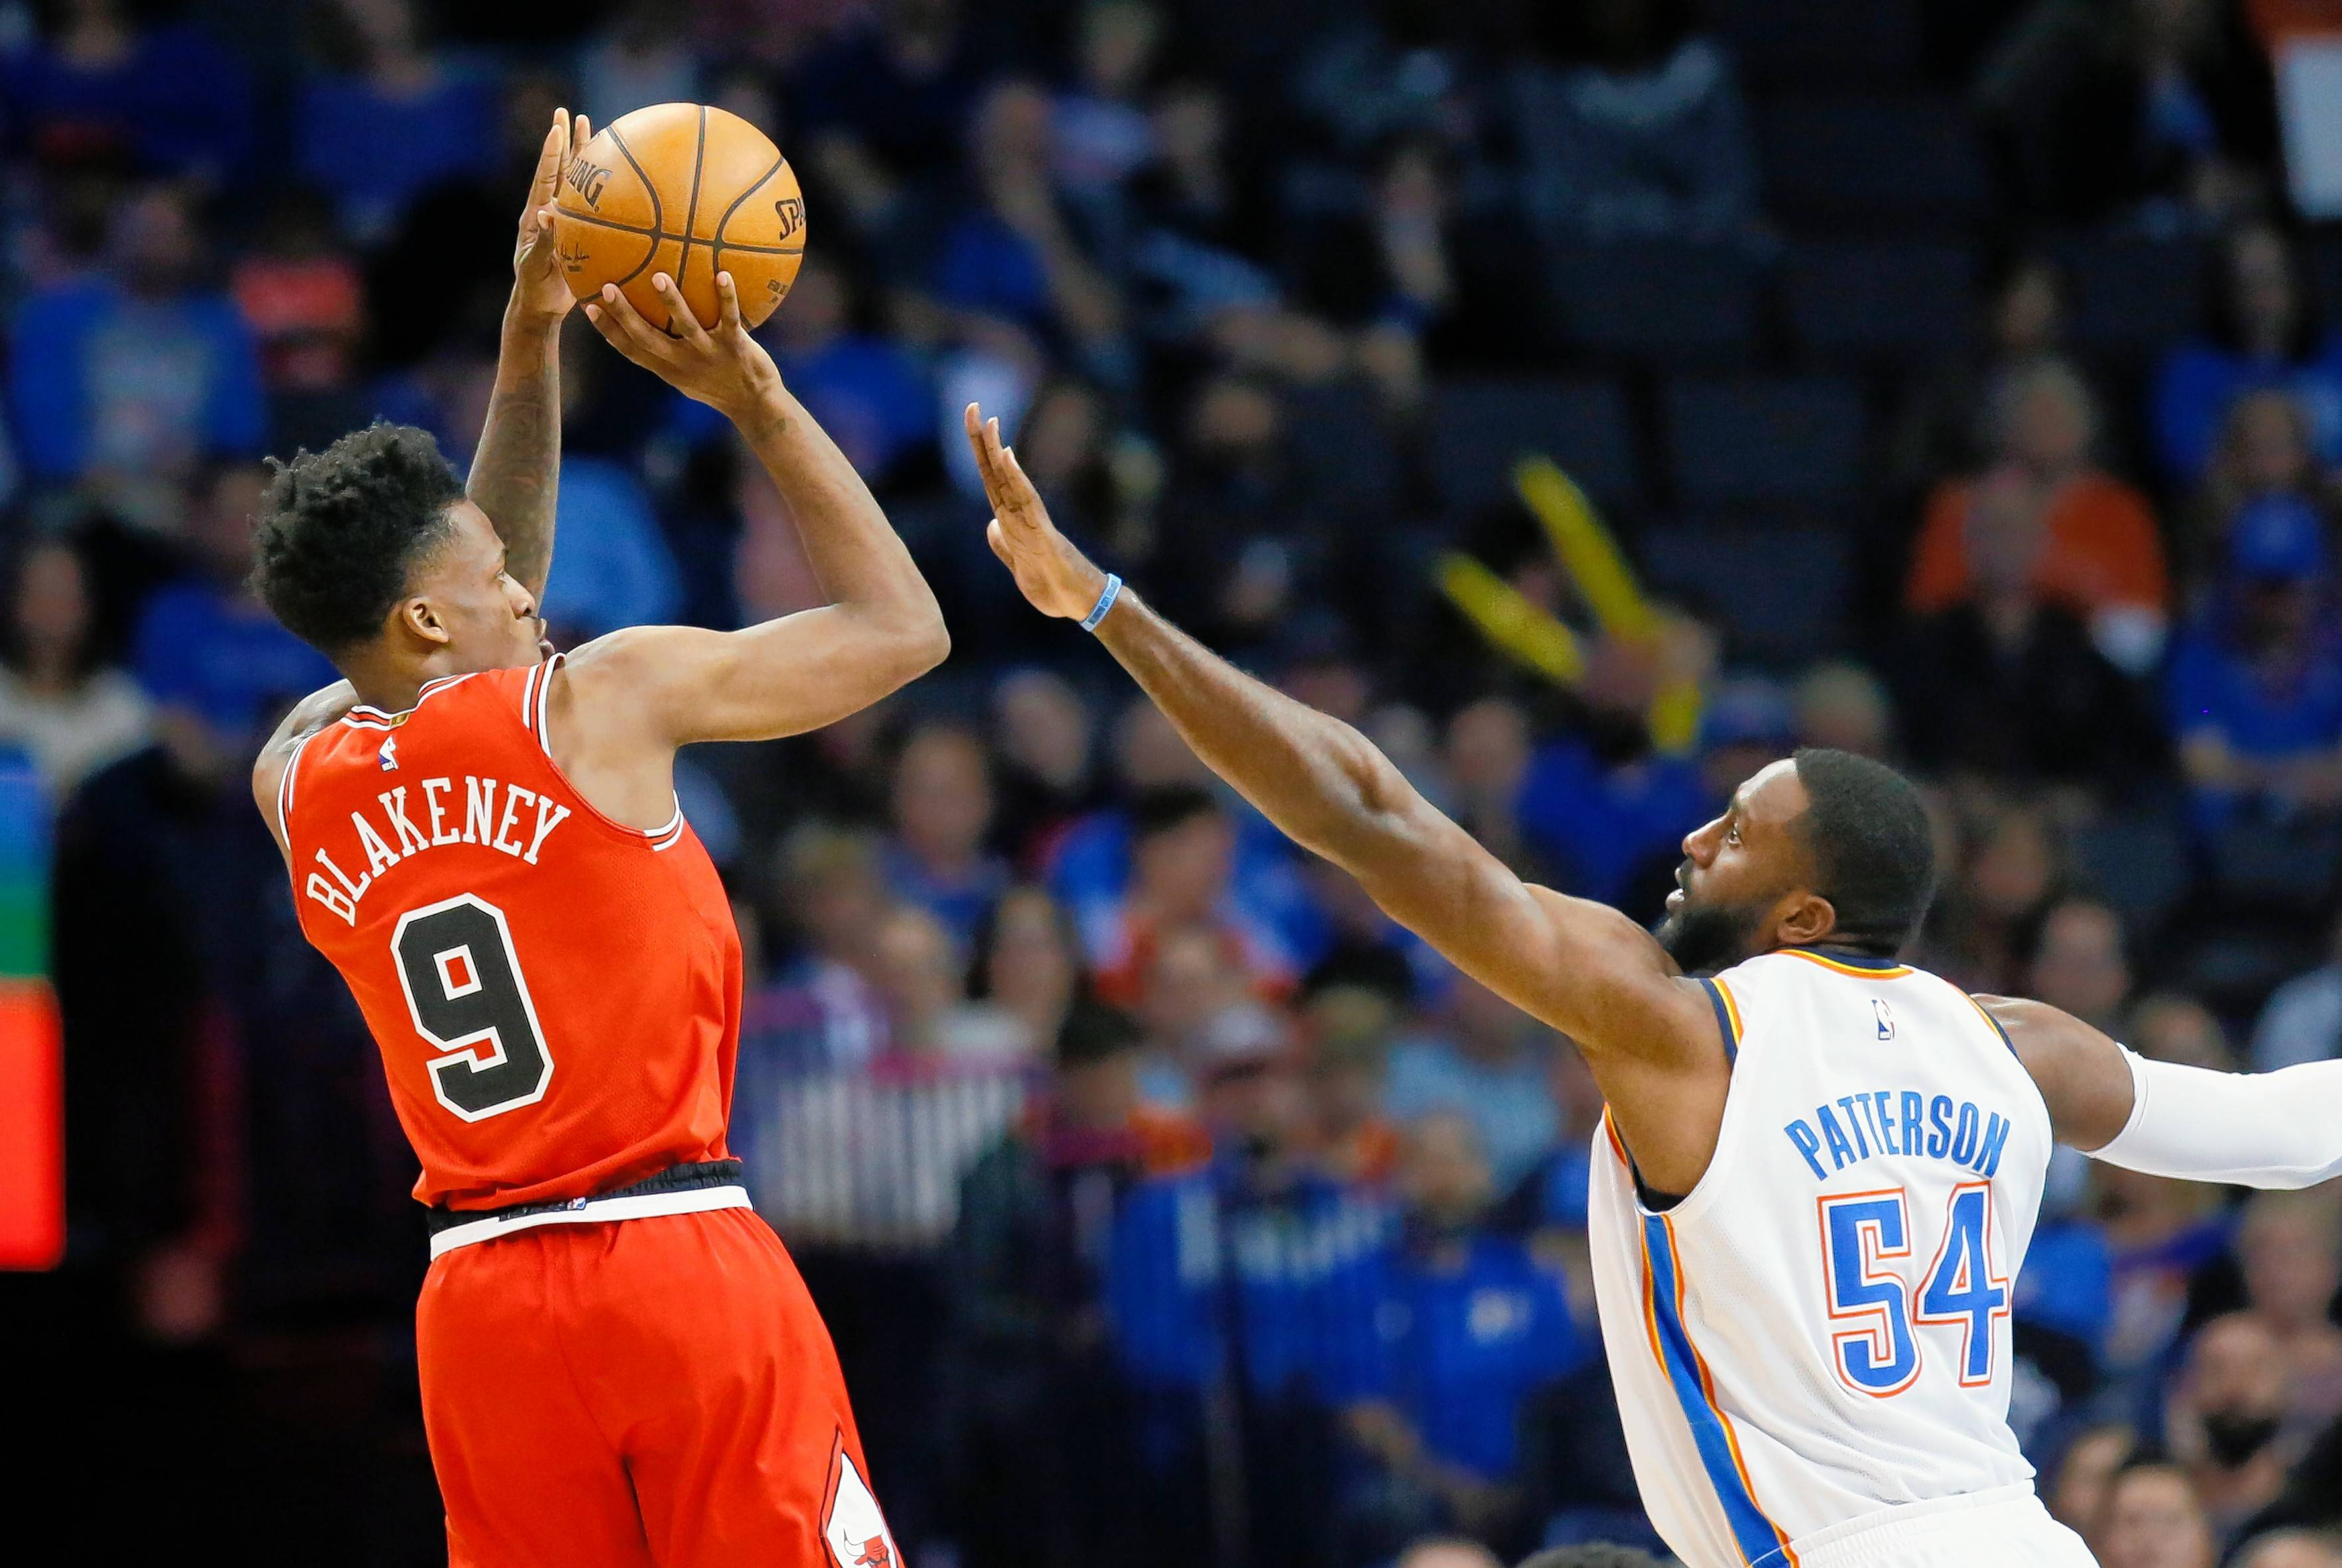 Chicago Bulls guard Antonio Blakeney shoots over Oklahoma City Thunder forward Patrick Patterson in Wednesday's road loss. Blakeney finished with 16 points as Oklahoma City won 92-79.